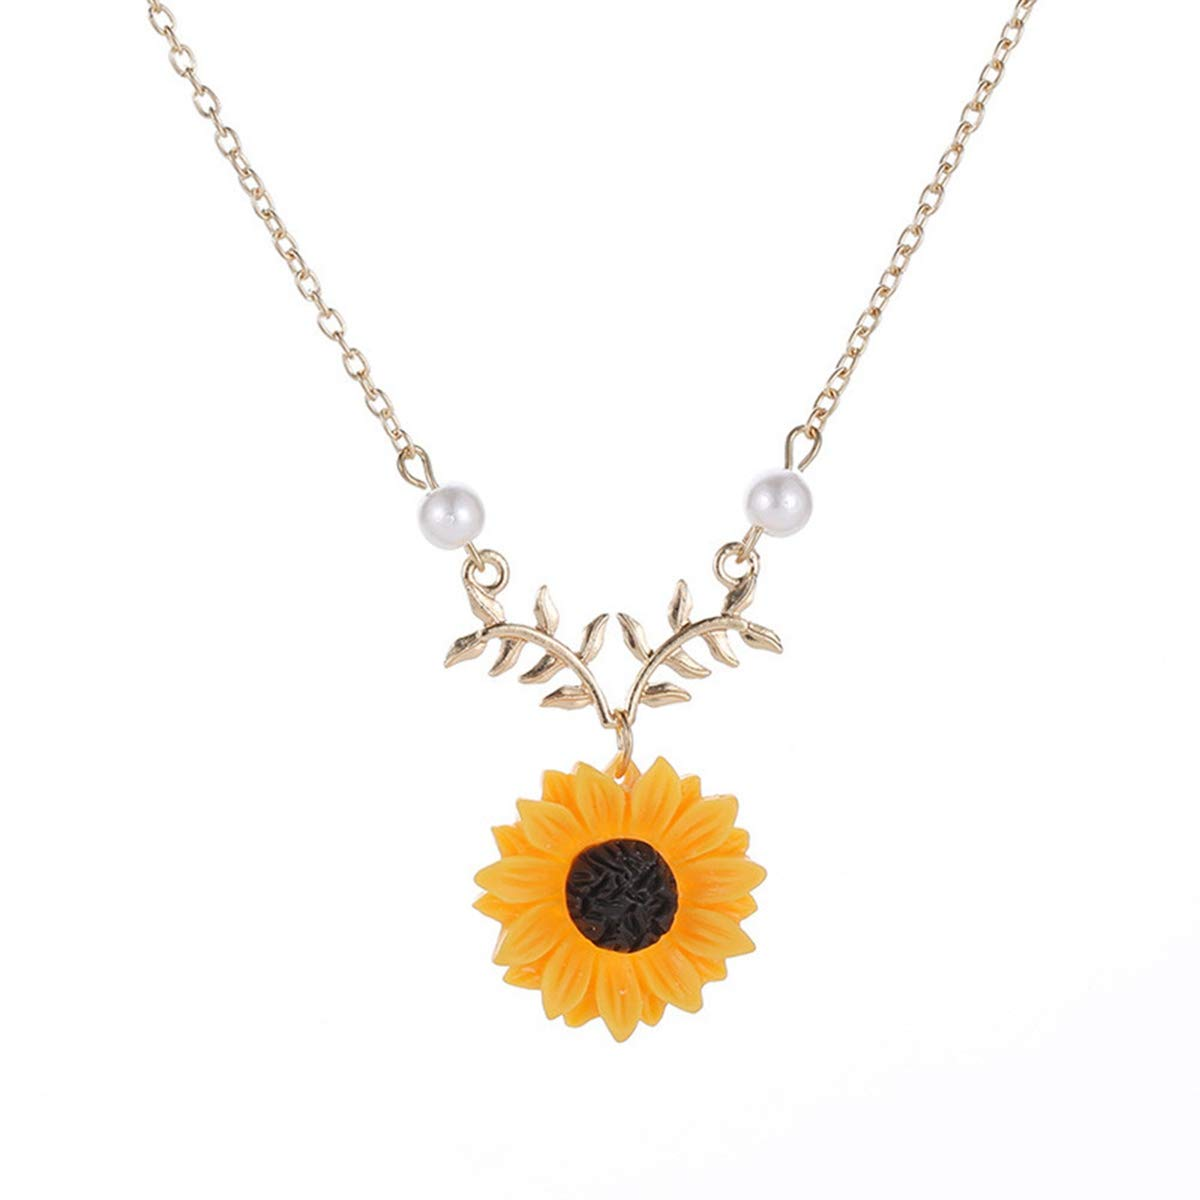 Zyqzw Hot New!Women Fashion Chain Lady Girls Sunflower Leaf Pendant Gold Plated Branch Charm Long Necklace